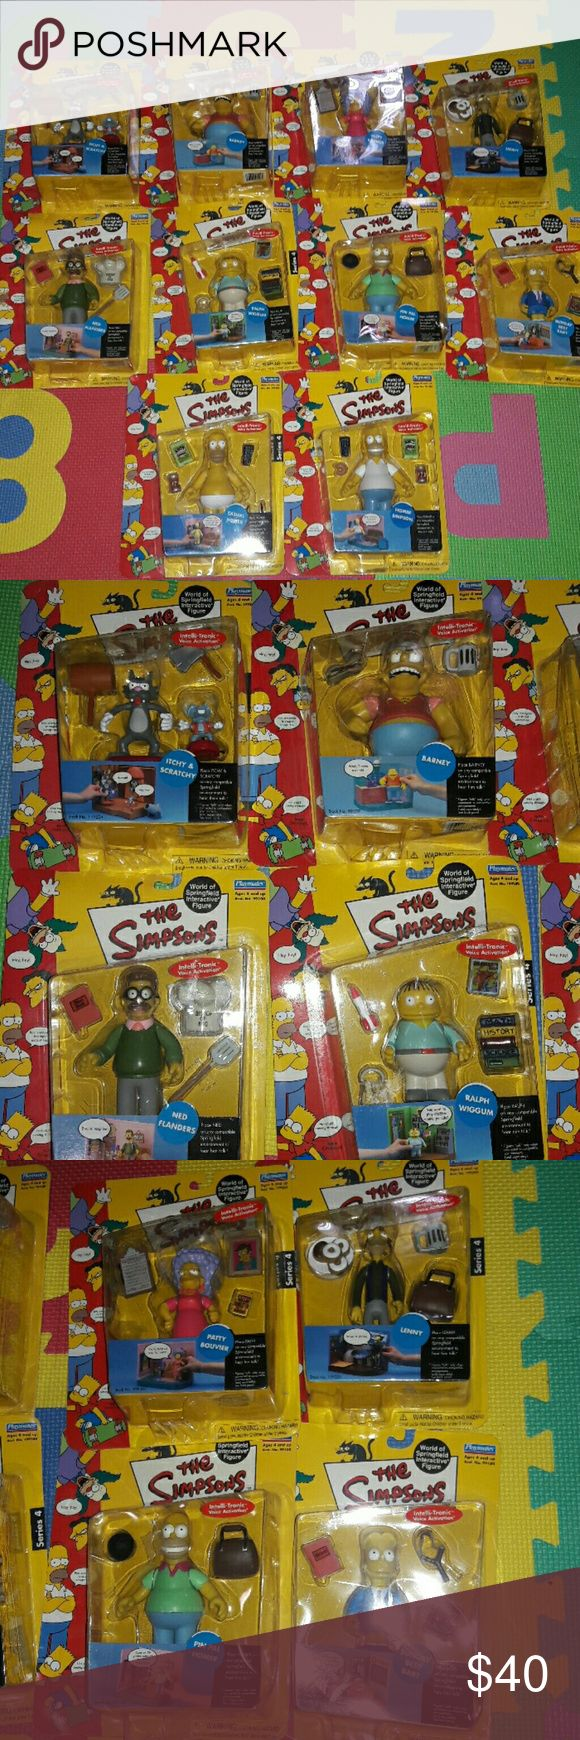 The Simpsons Playmates Intelli- Tronic Bundle New and sealed box. Bundle of 10 figurines. The simpsons playmates Intelli- Tronic Voice activation.  Itchy and scratchy Barney  Patty Bouvier Lenny Ned Flanders Ralph Wiggum Homer Simpson  Pin pal Homer Sunday best Bart Casual Homer Playmates Other